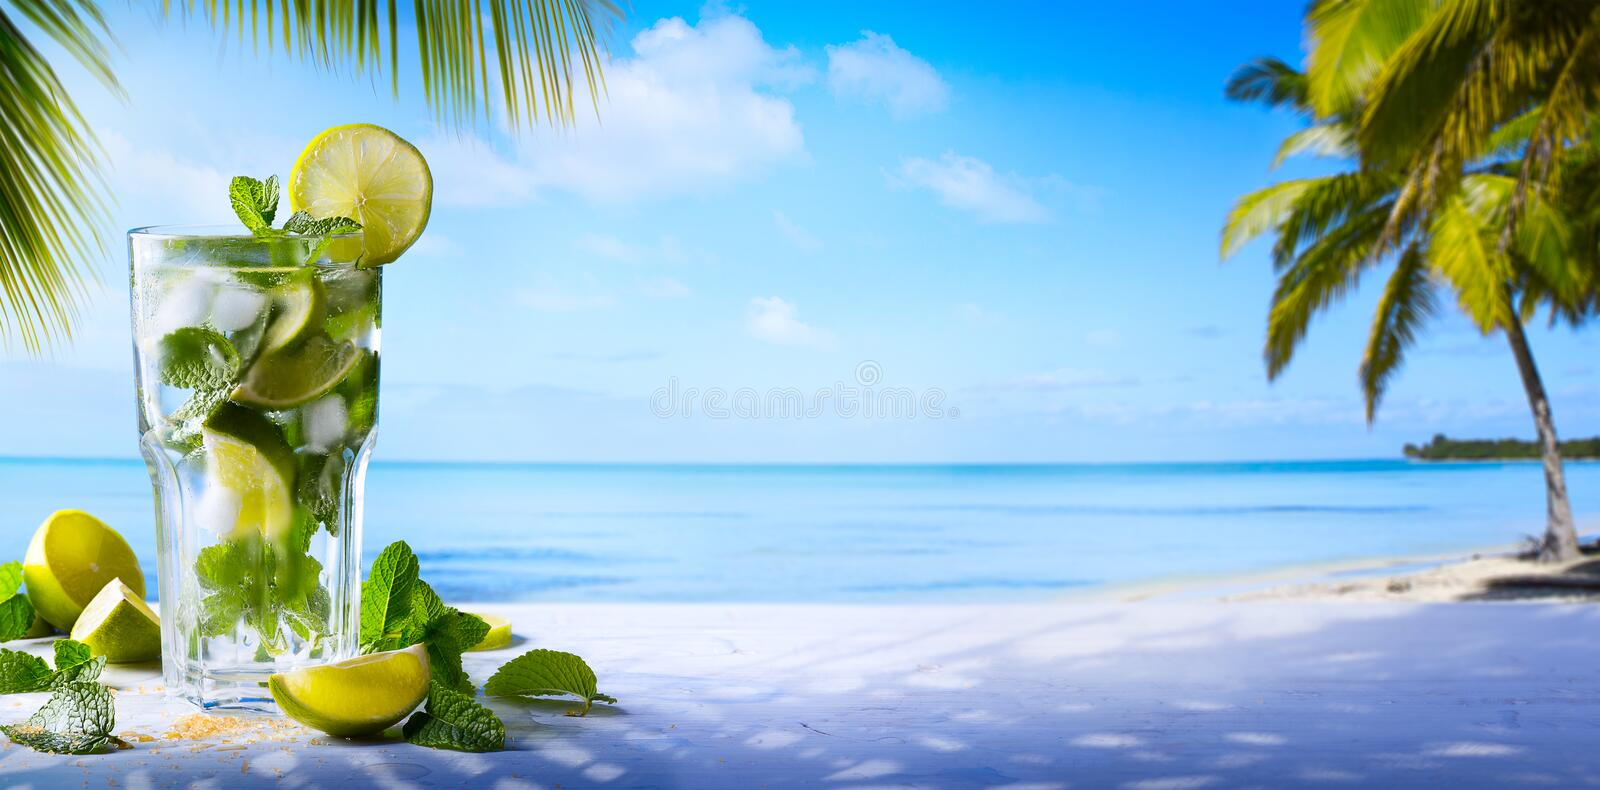 tropic summer vacation; Exotic drinks on blur tropical beach background royalty free stock image